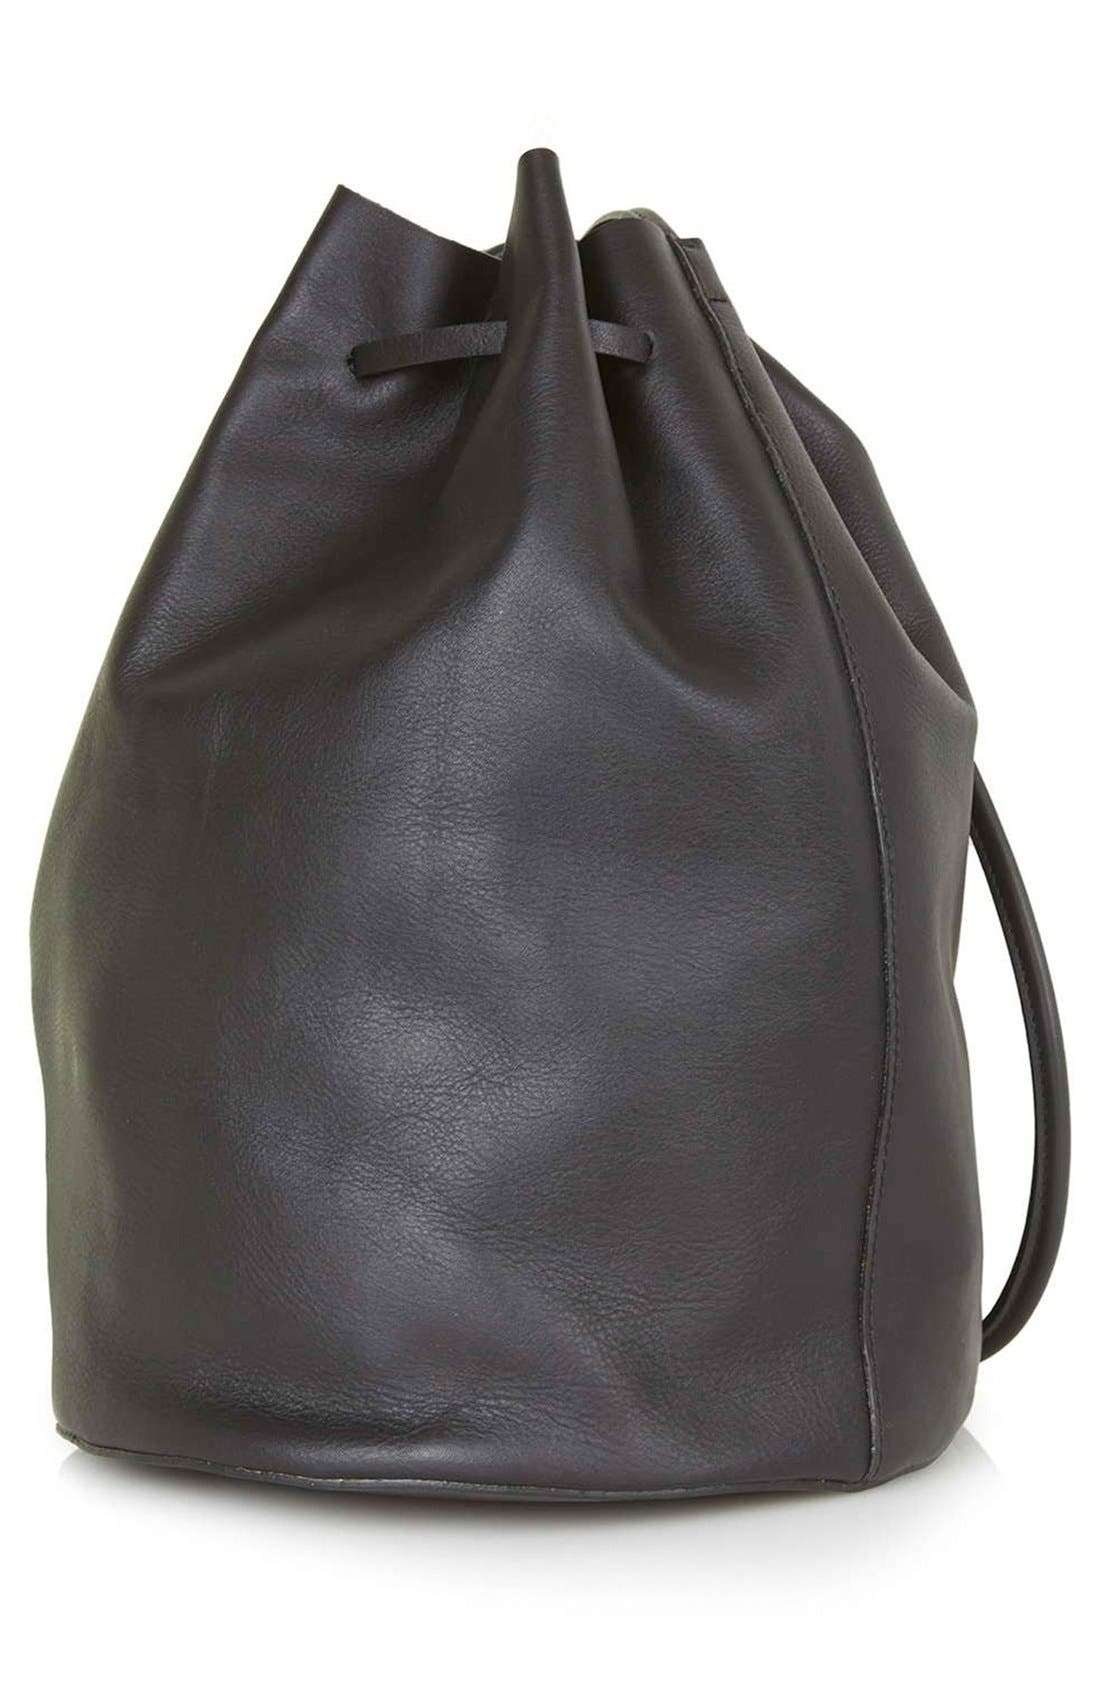 Alternate Image 1 Selected - Topshop 'Pisces' Leather Bucket Bag